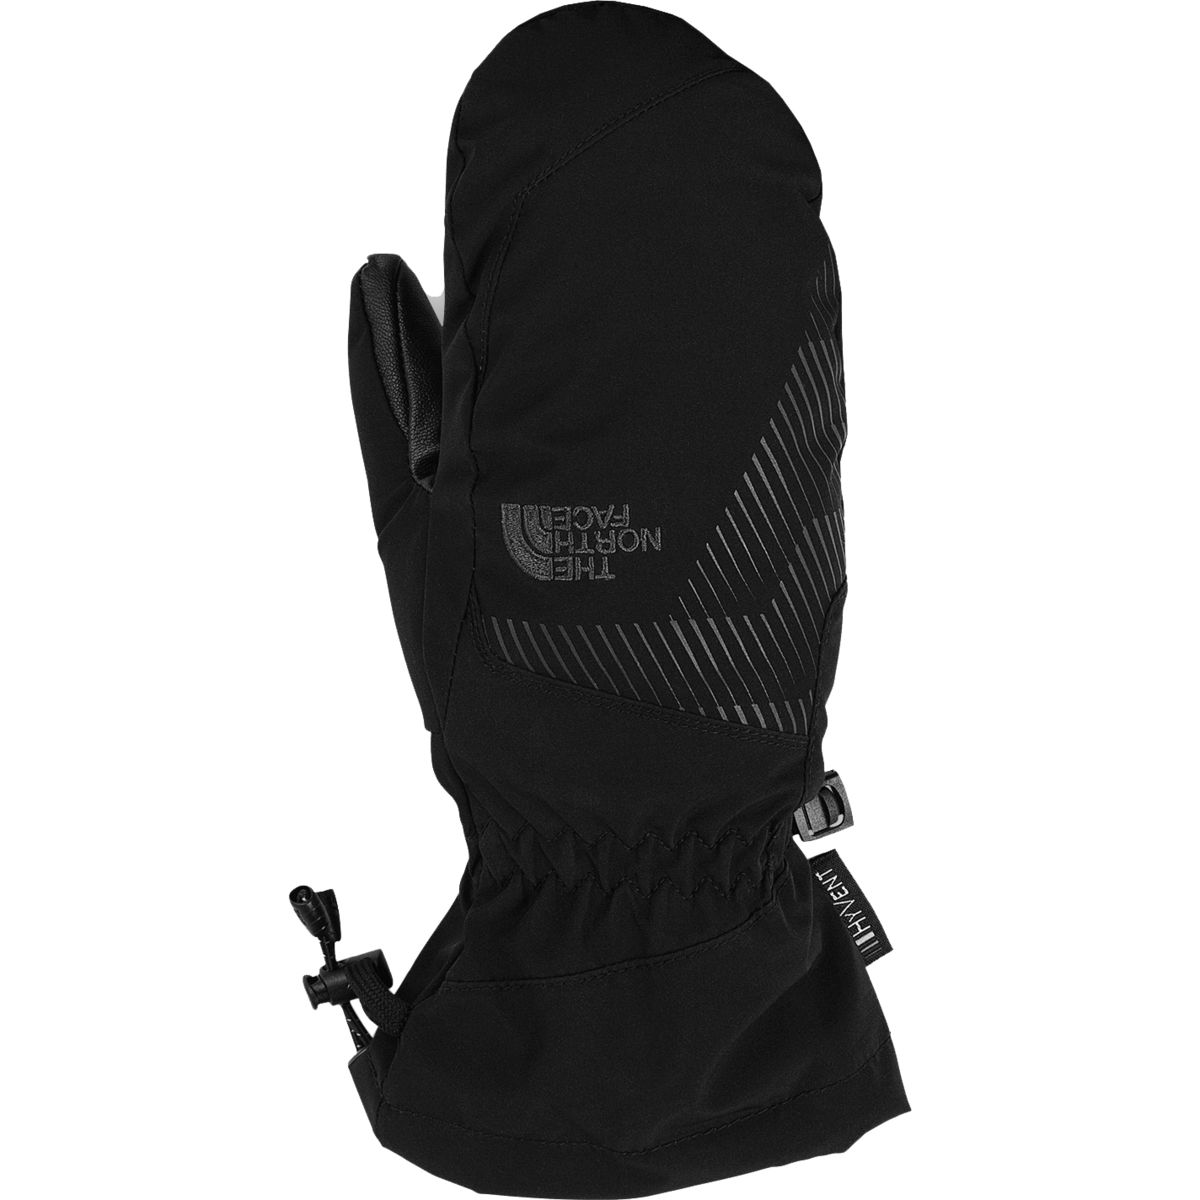 The North Face Revelstoke Mitten - Kids